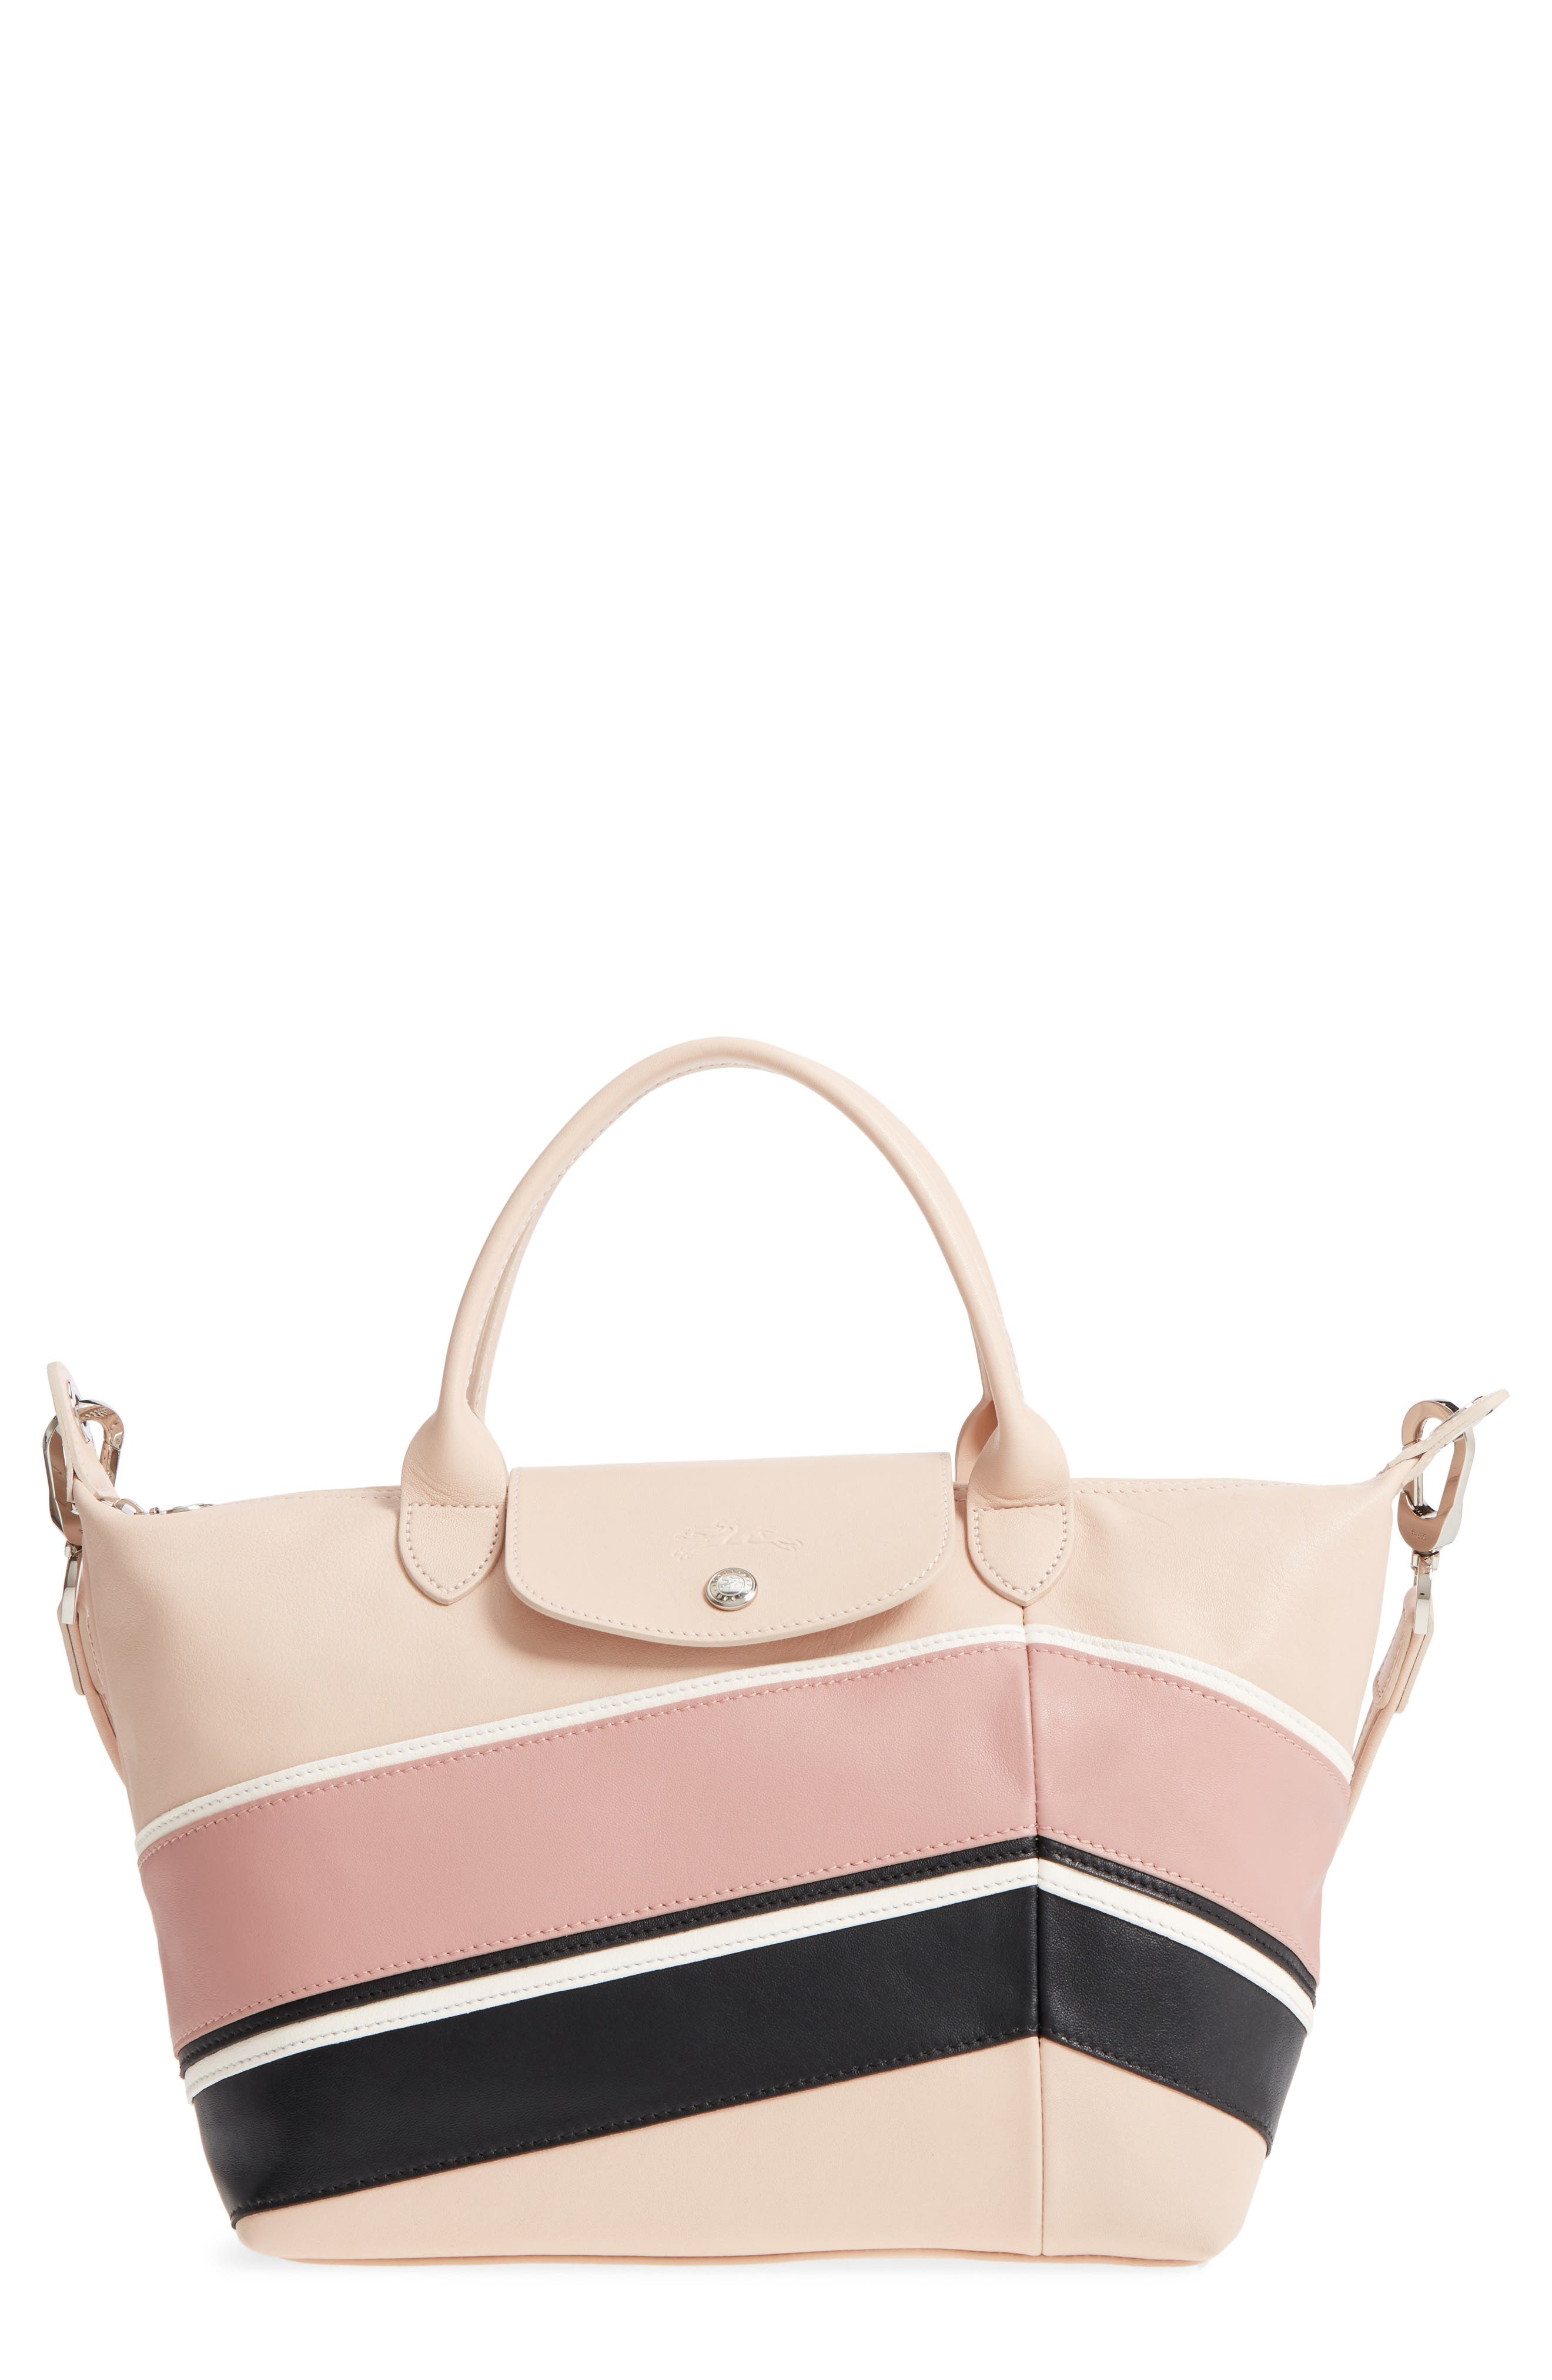 Small Le Pliage Cuir - Chevron Leather Top Handle Tote,                             Main thumbnail 1, color,                             650